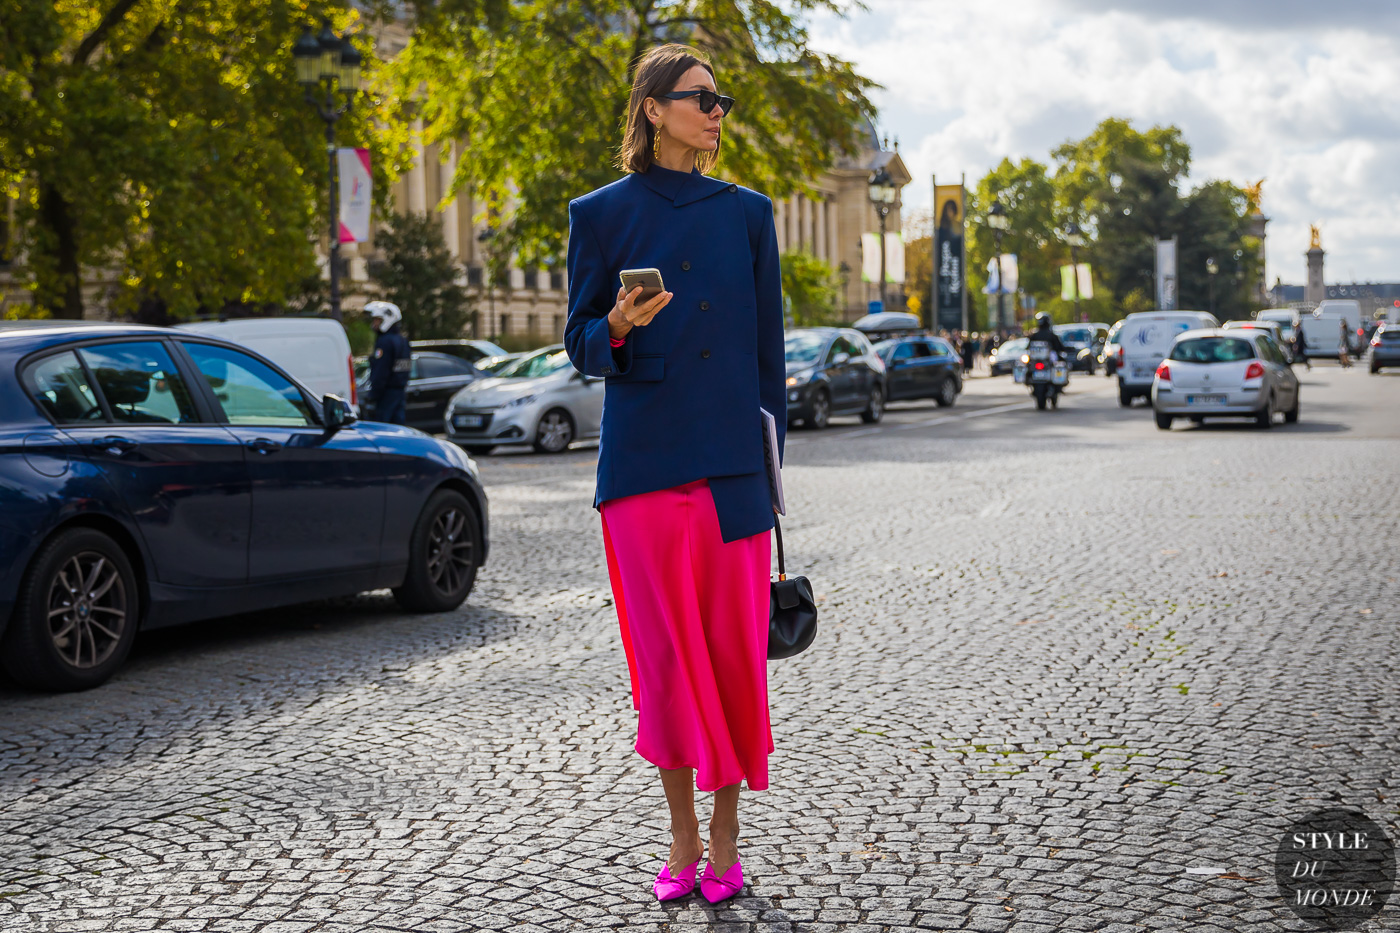 Julie Pelipas by STYLEDUMONDE Street Style Fashion Photography_48A3387